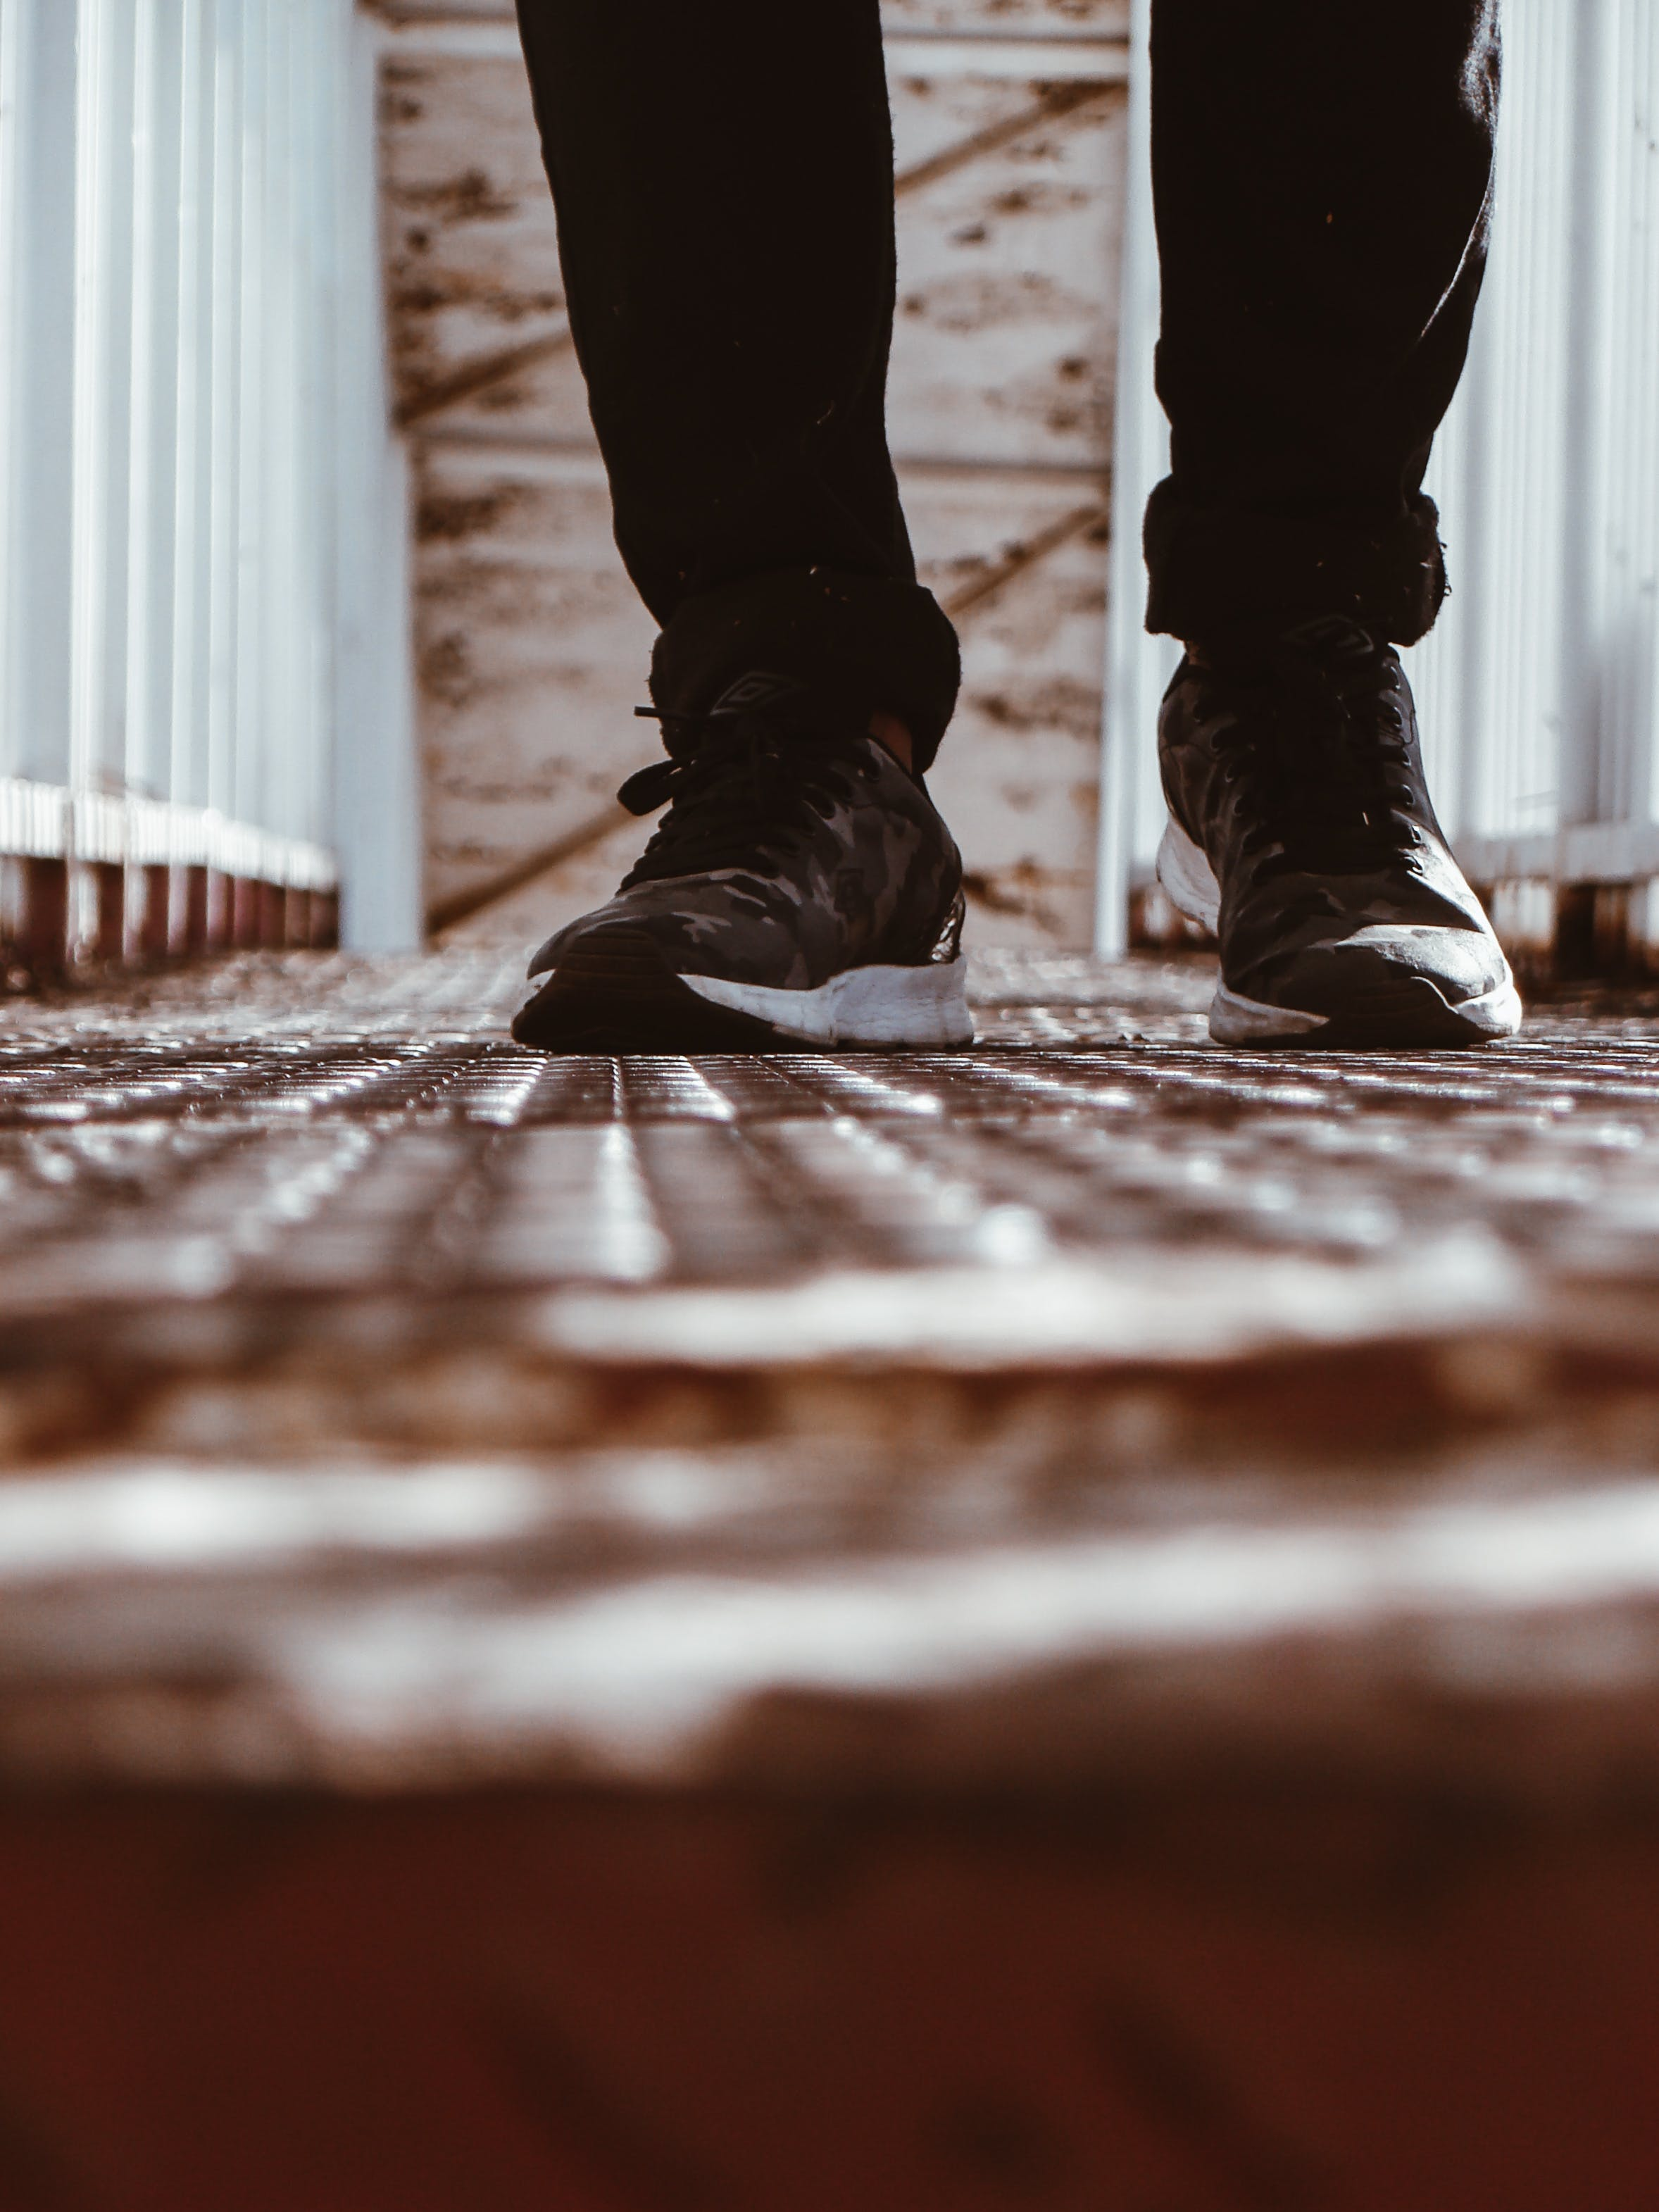 Person in Black-and-white Shoes Standing on Brown Metal Floor